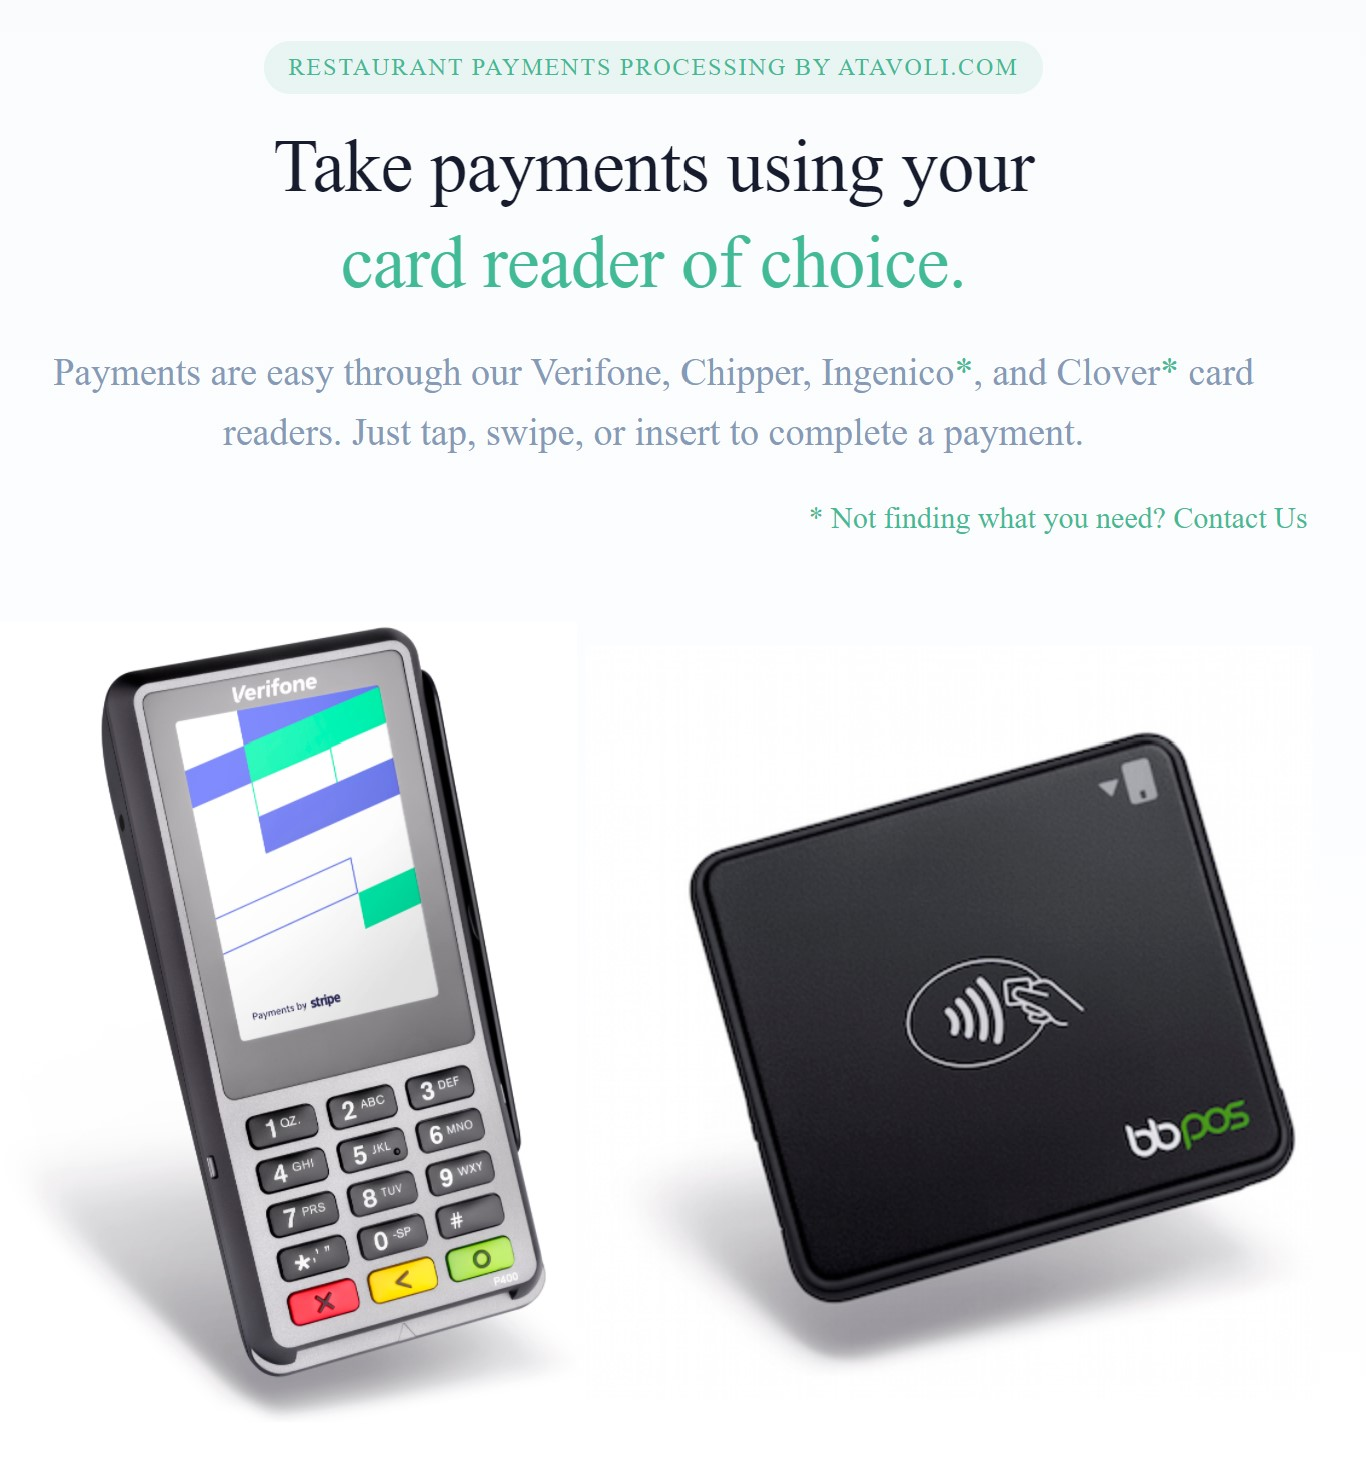 Restaurant Payments Processing | Restaurant Point of Sale | Restaurant POS | Restaurant POS System